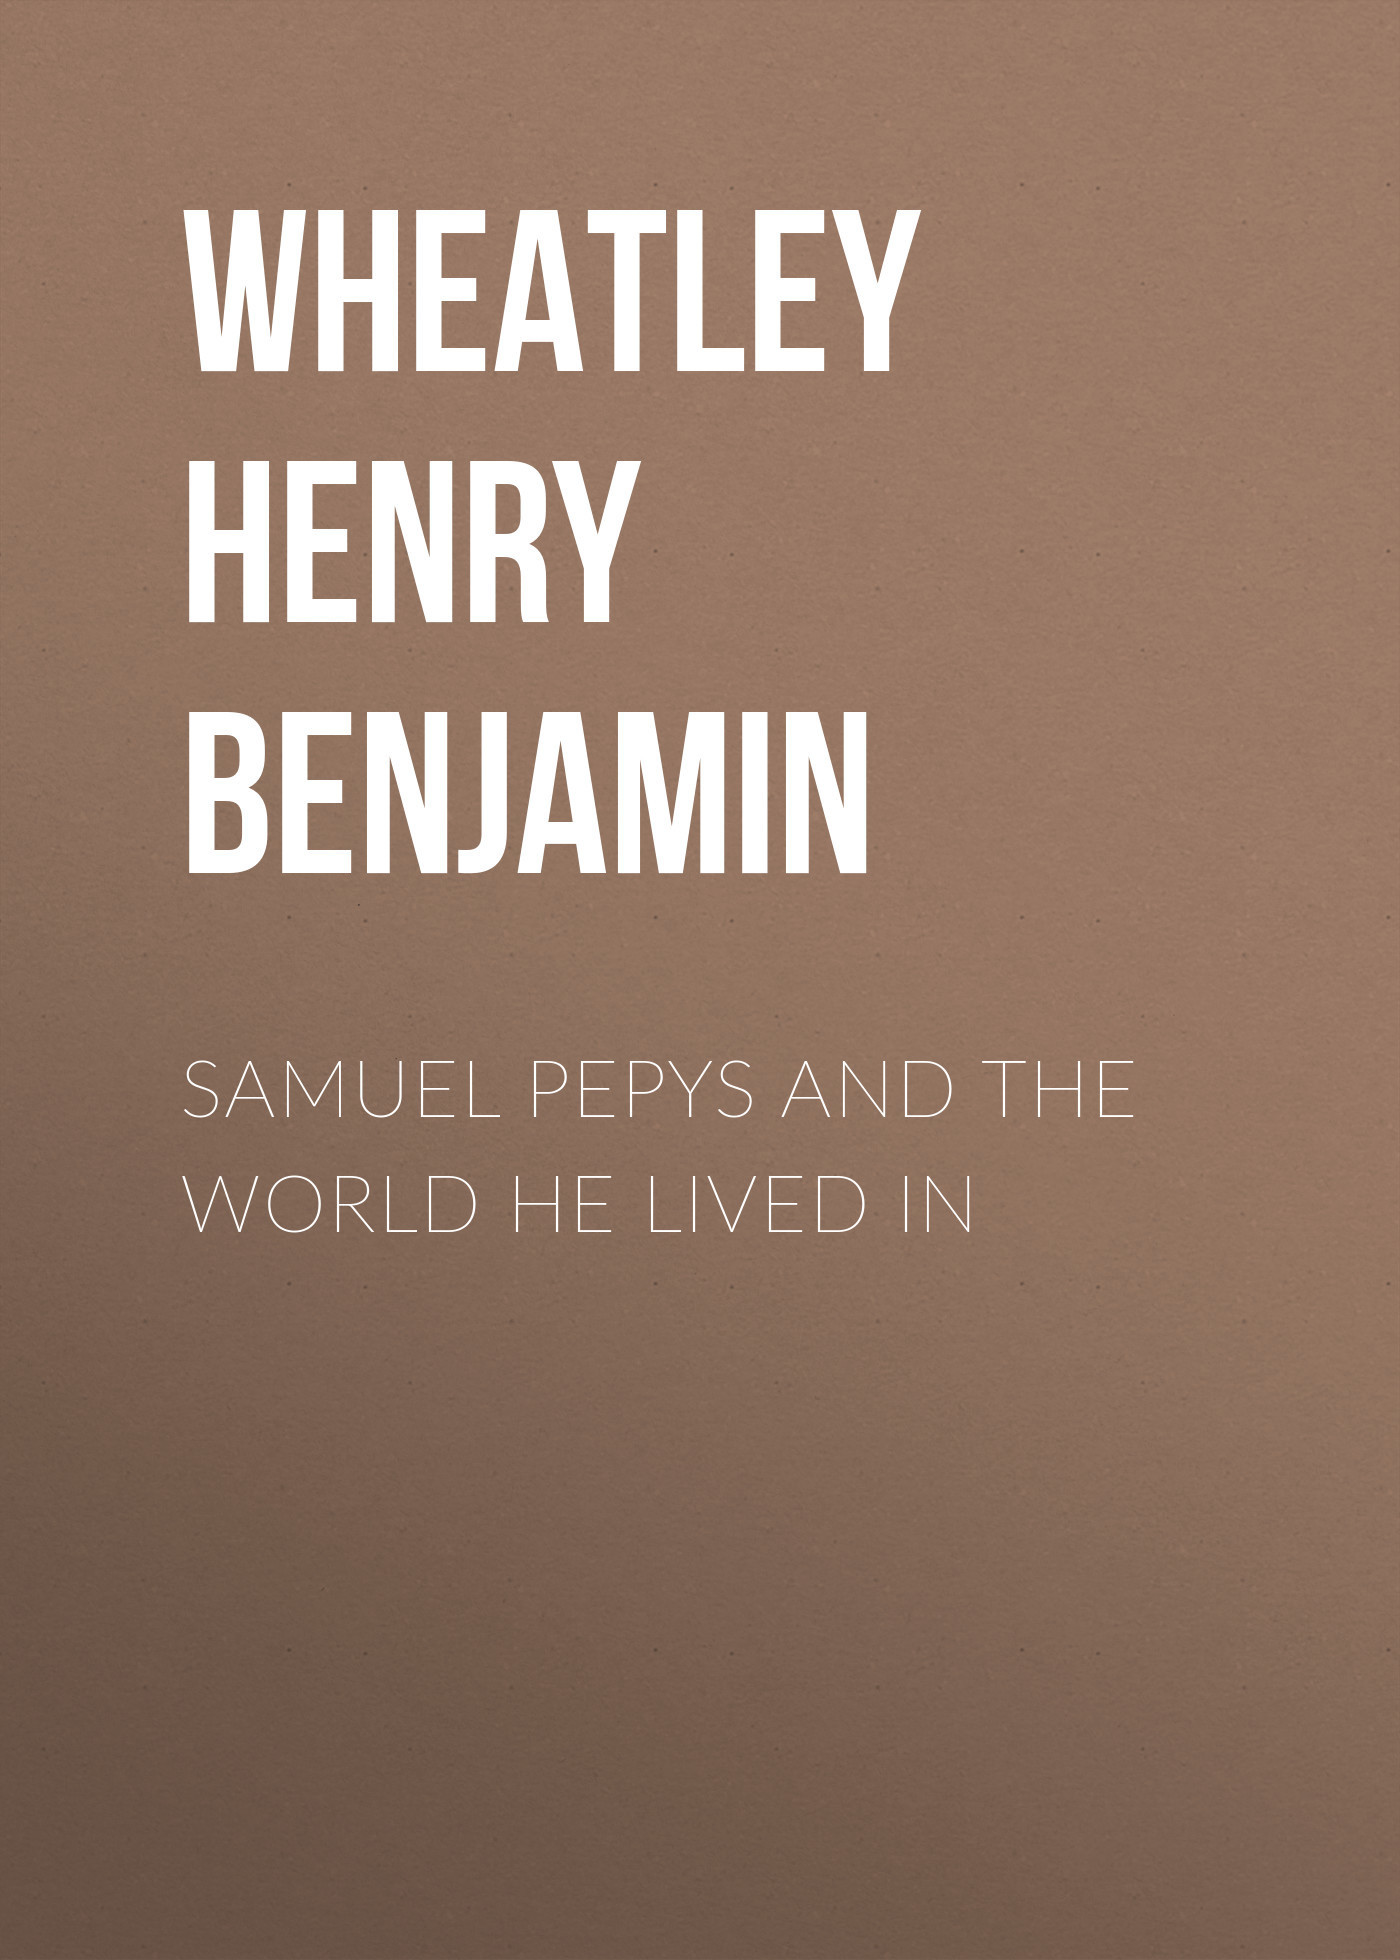 Wheatley Henry Benjamin Samuel Pepys and the World He Lived In maybelline палетка теней the nudes 01